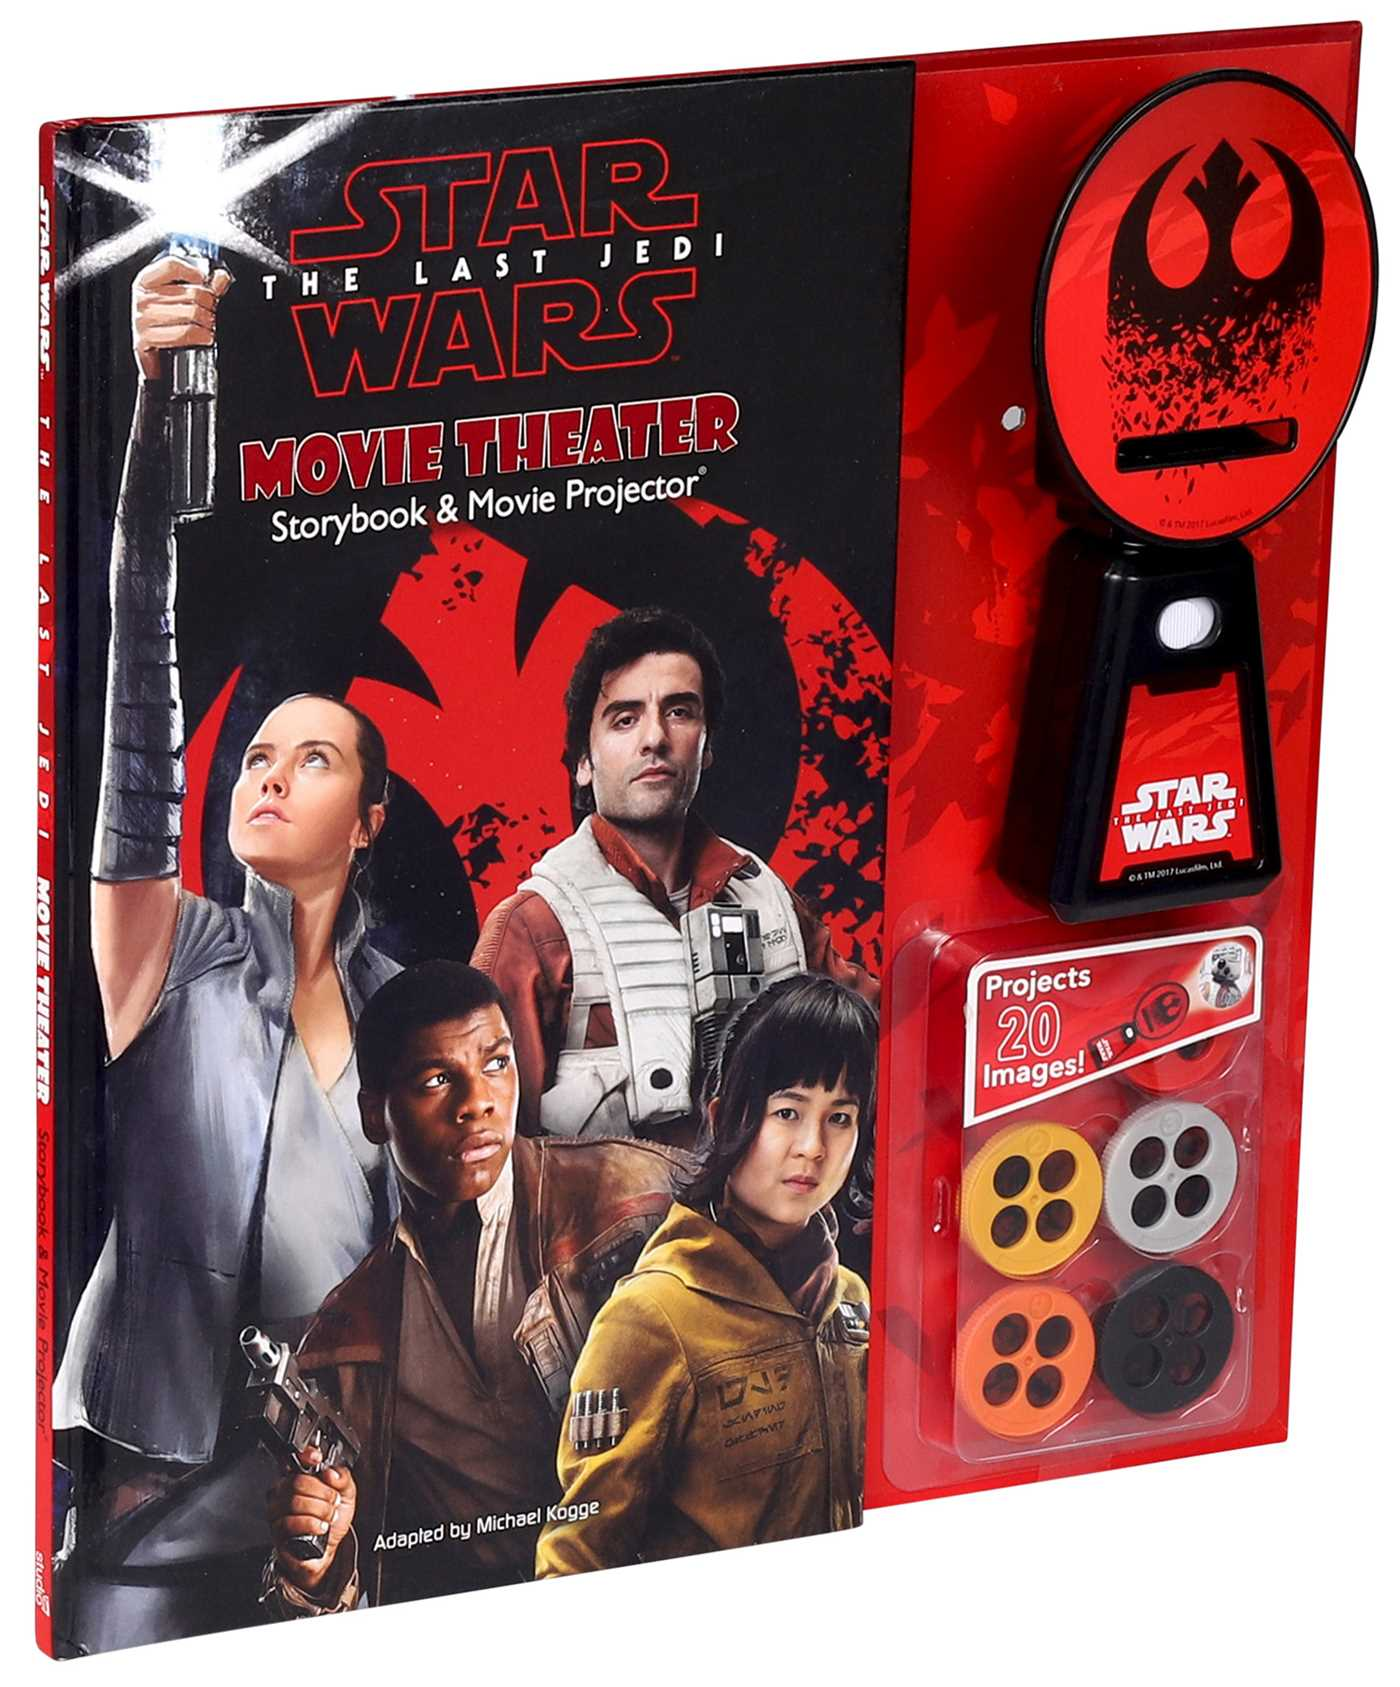 Star wars the last jedi movie theater storybook movie projector 9780794440442 hr